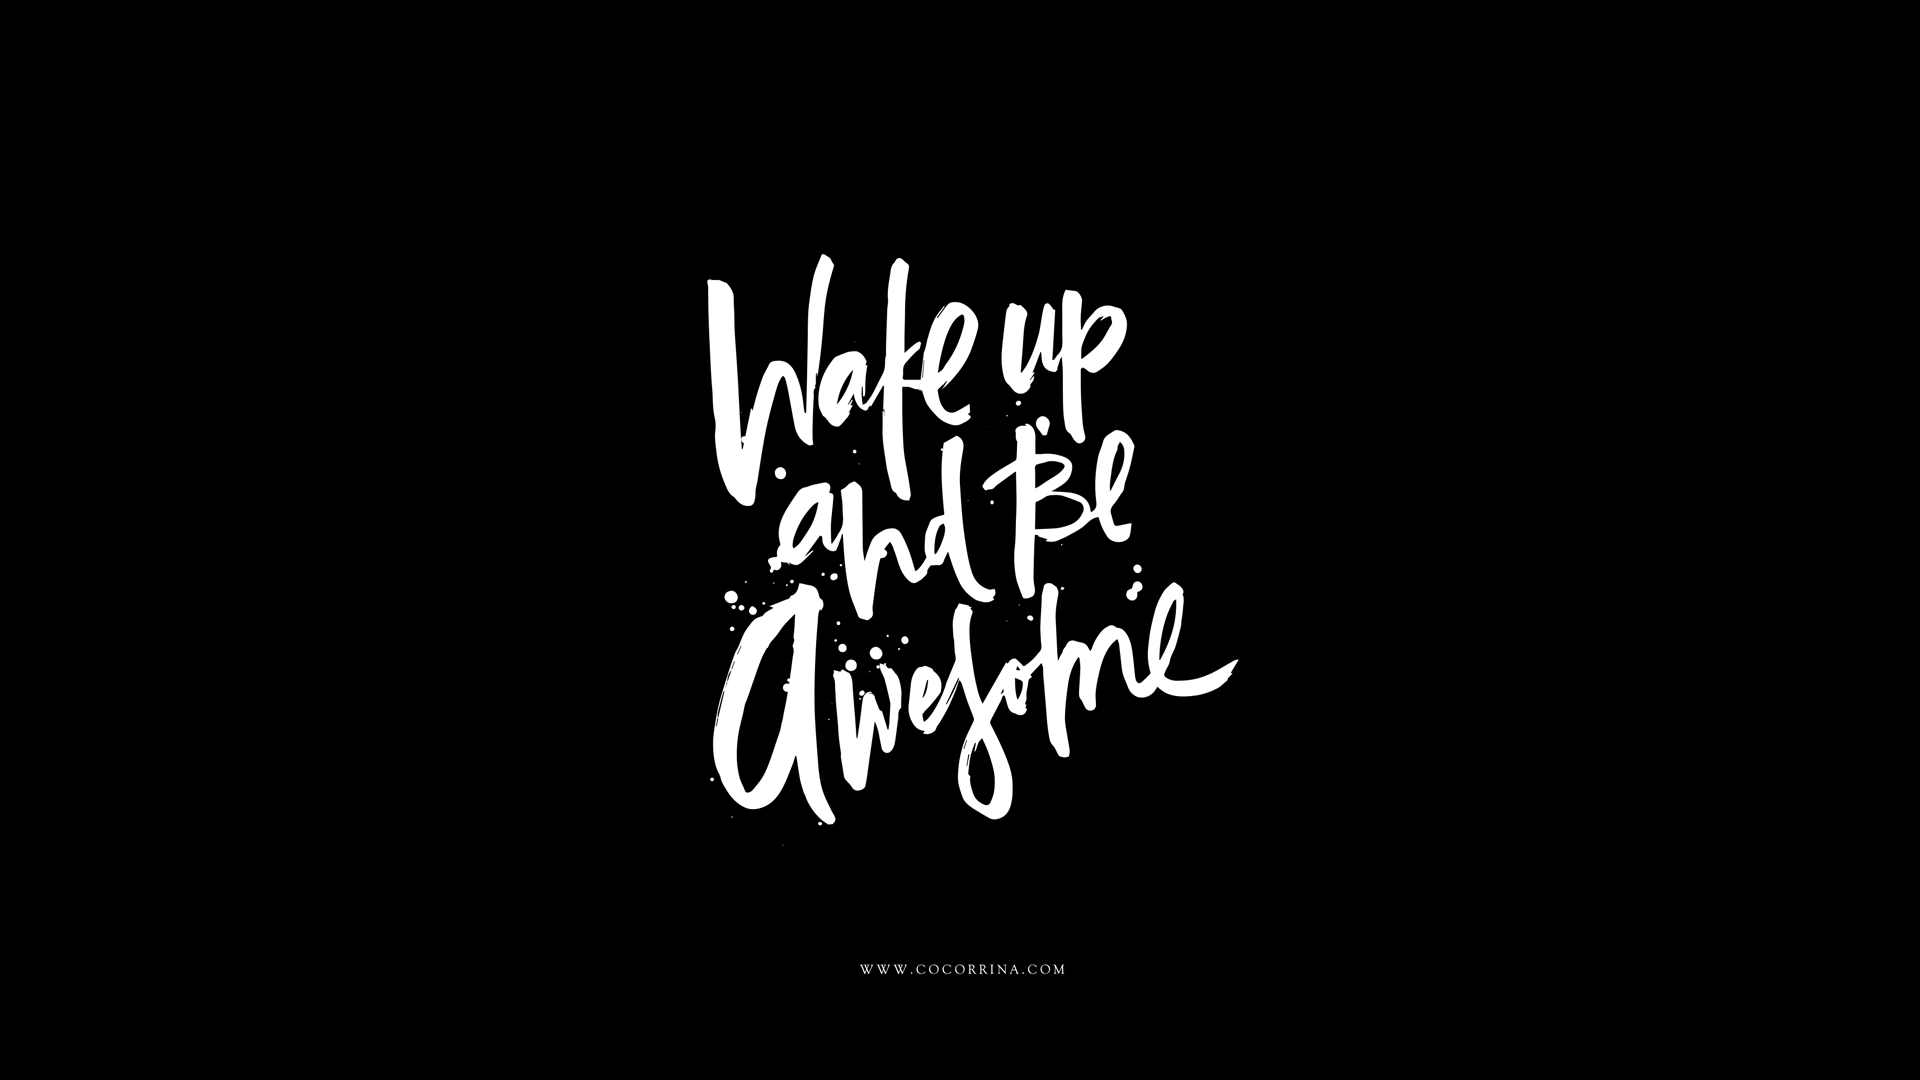 Black White Calligraphy Wake Up Be Awesome Desktop